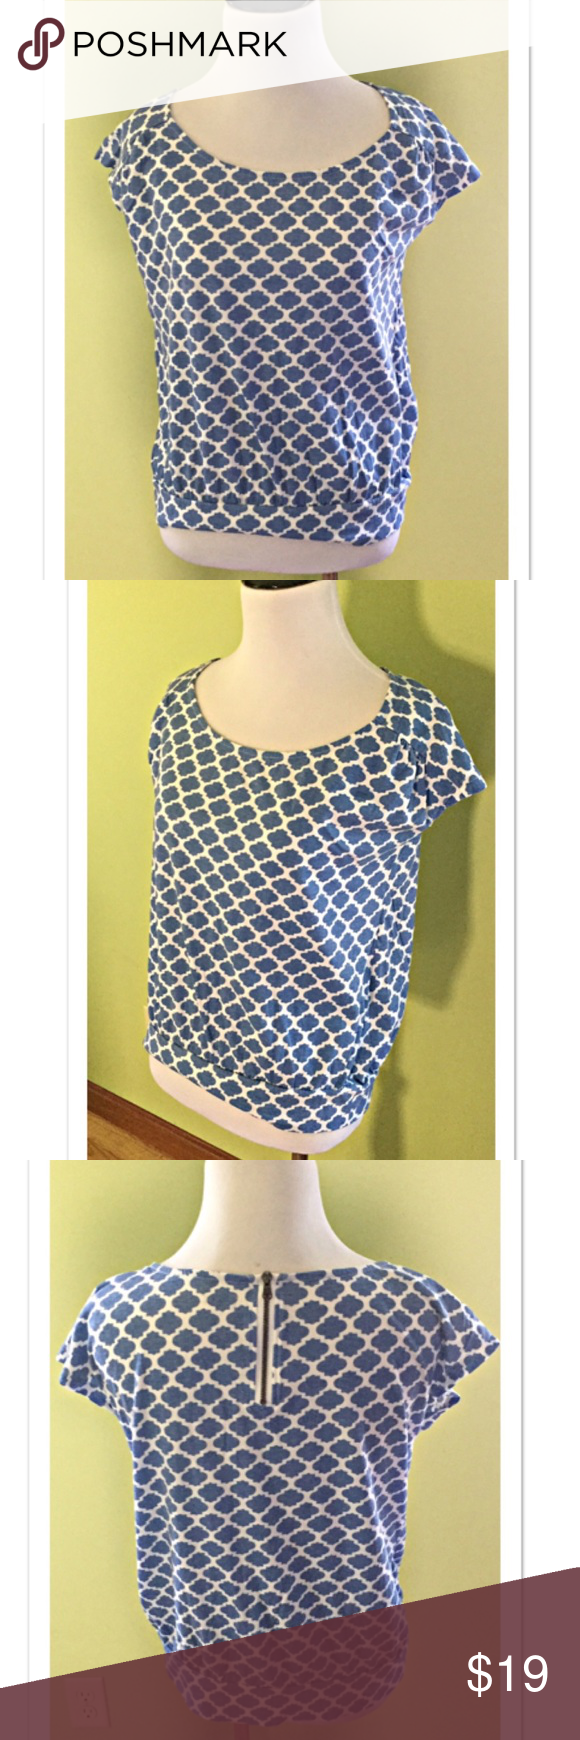 LOFT Blue Print Cap Sleeve Top W Exposed Zipper S Super Cute Top From Ann  Taylor